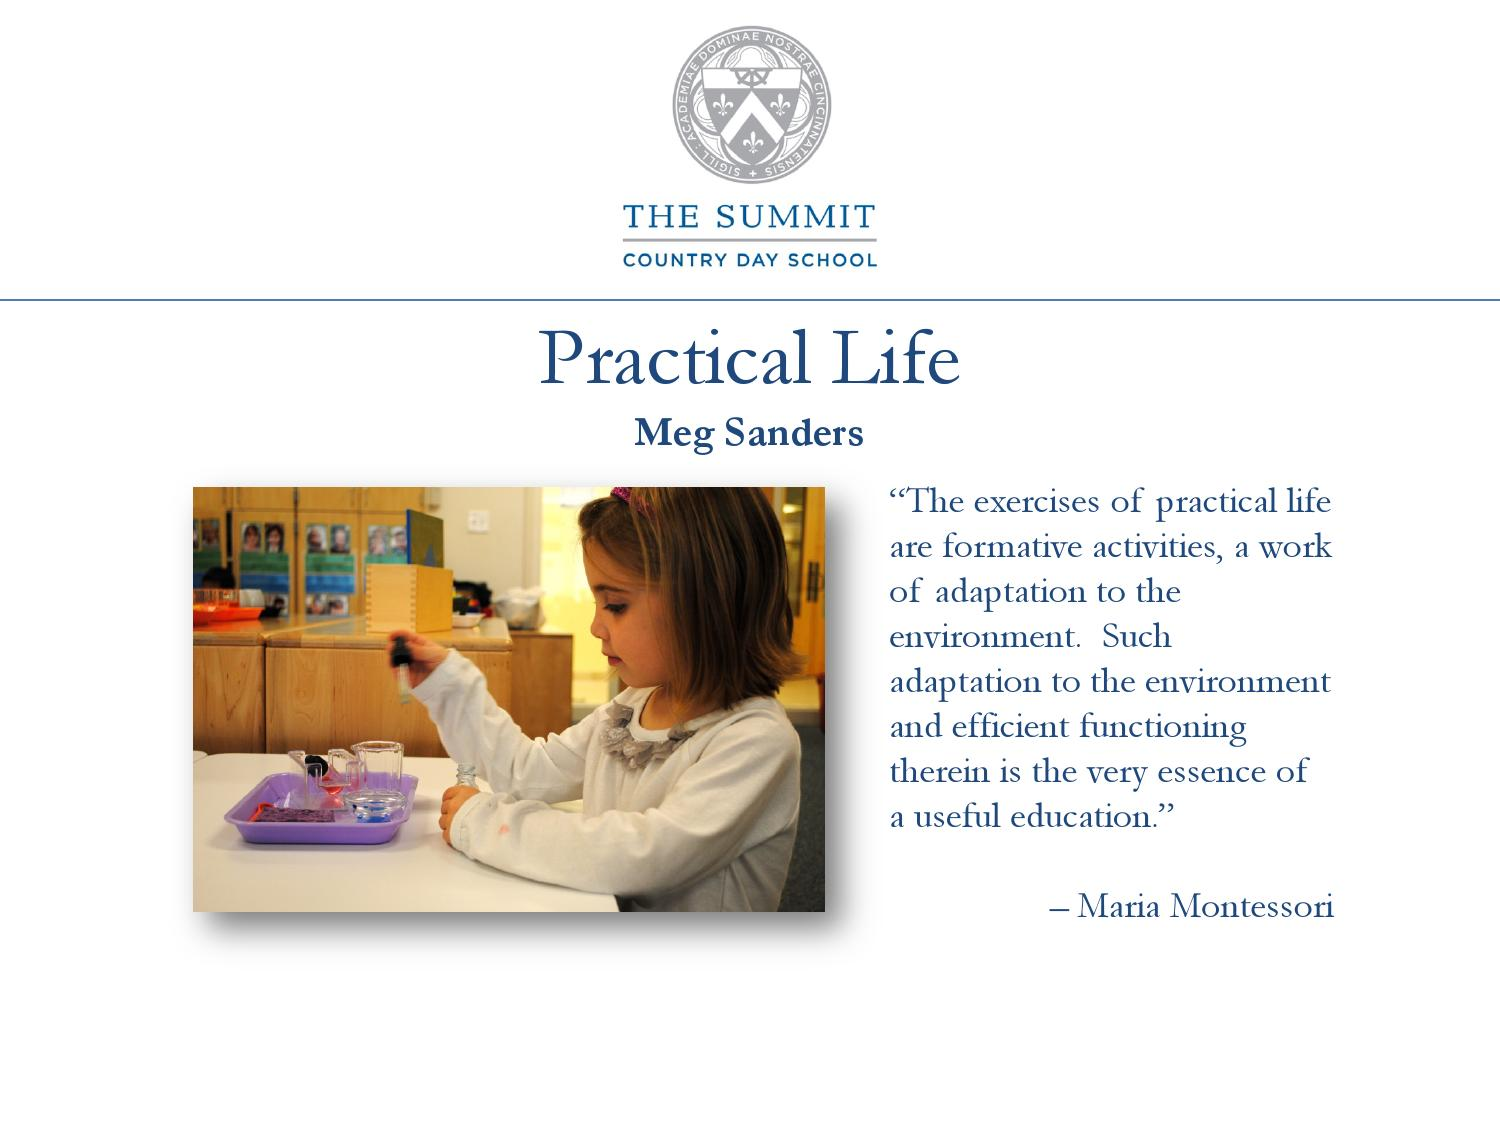 life and works of maria montessori Maria montessori, her life and work [e m standing] on amazoncom free shipping on qualifying offers.